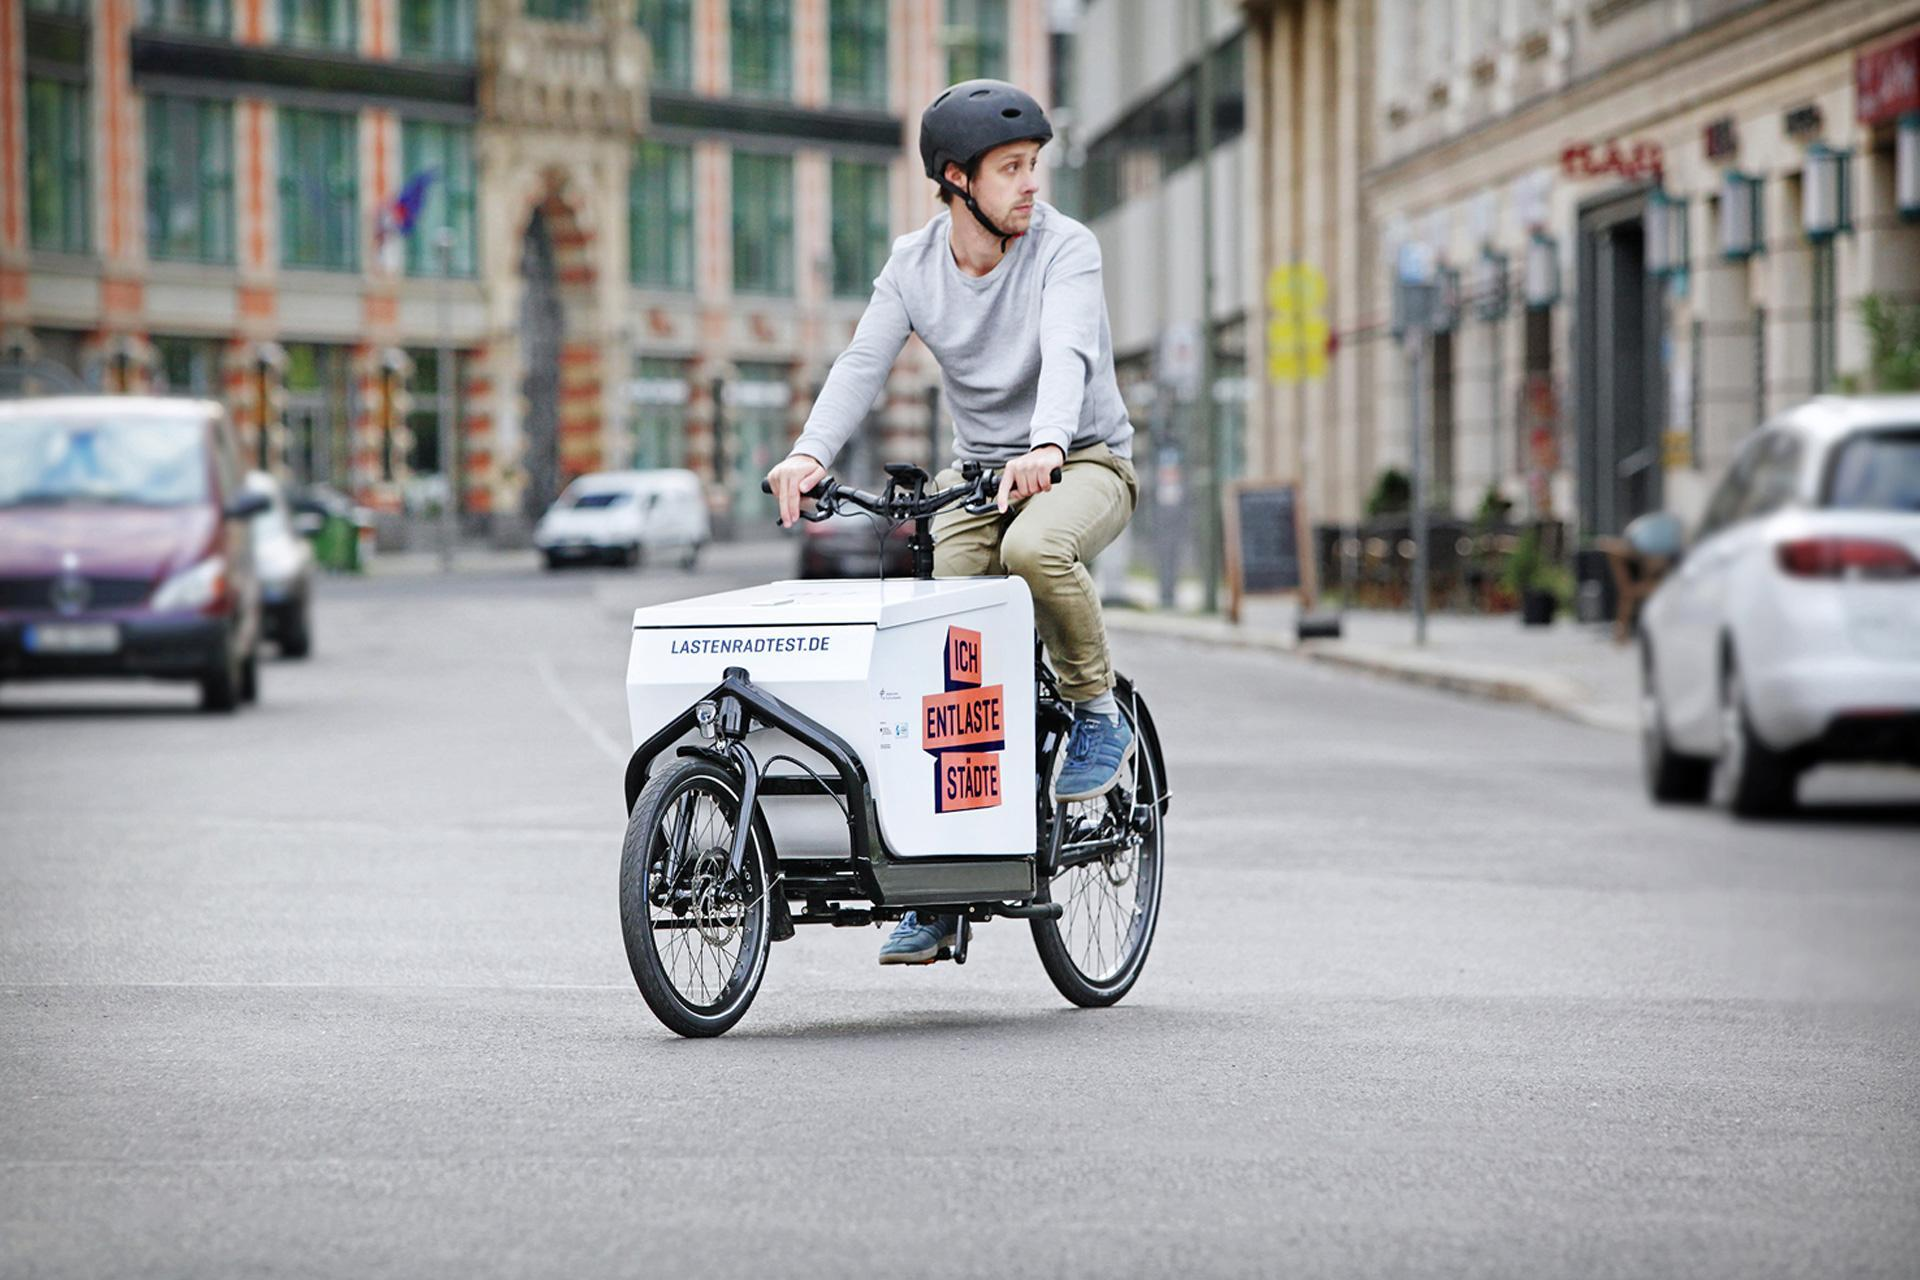 The cargo bike in action